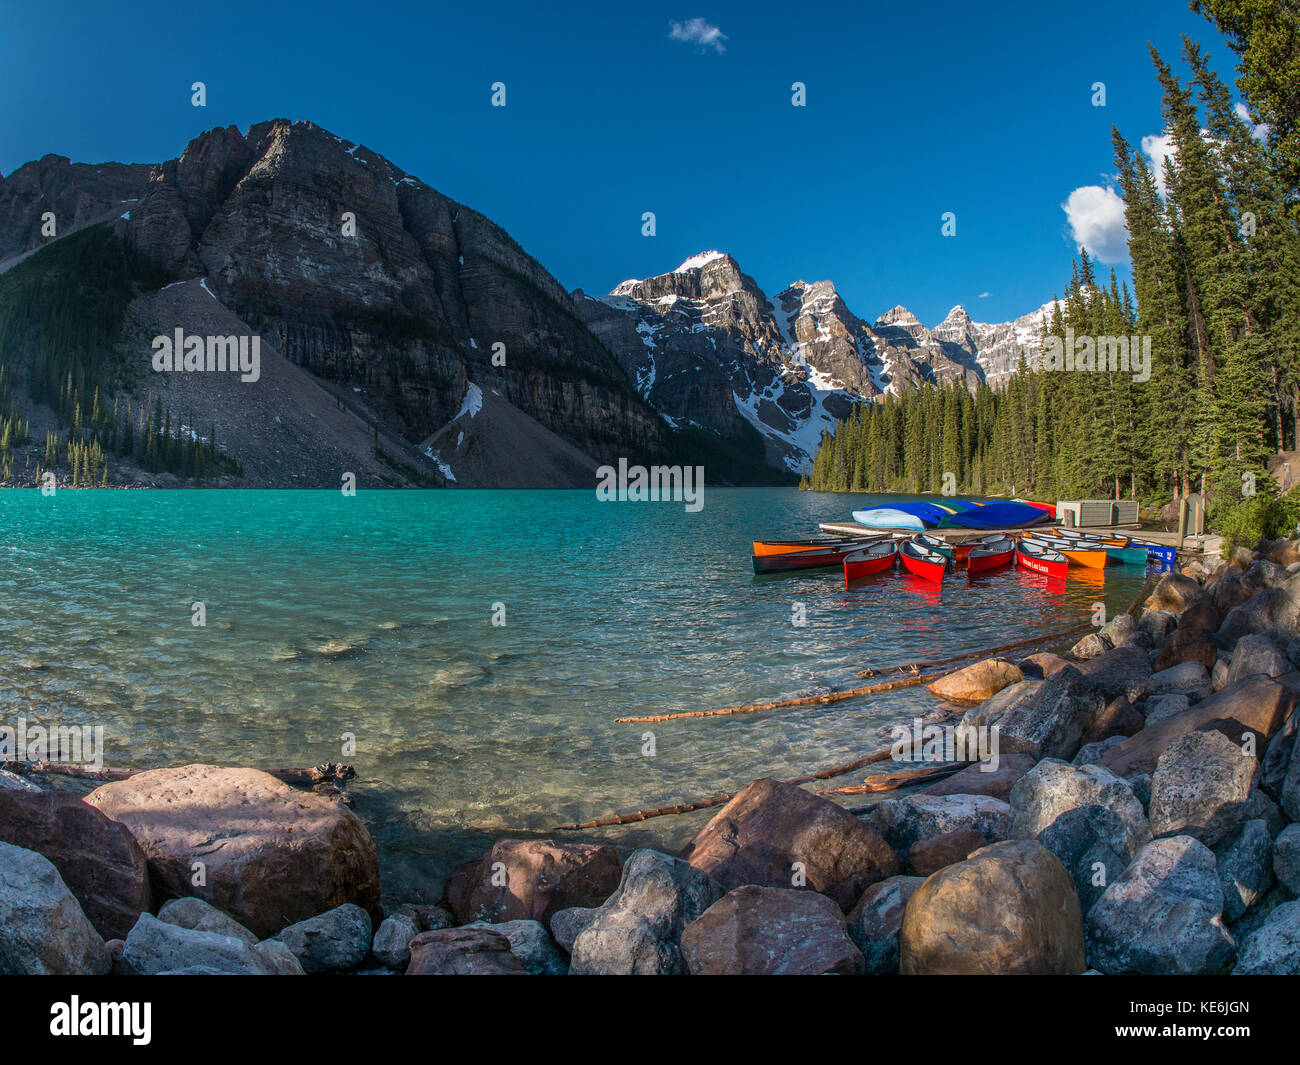 Moraine Lake, Banff National Park, Alberta, Canada. - Stock Image